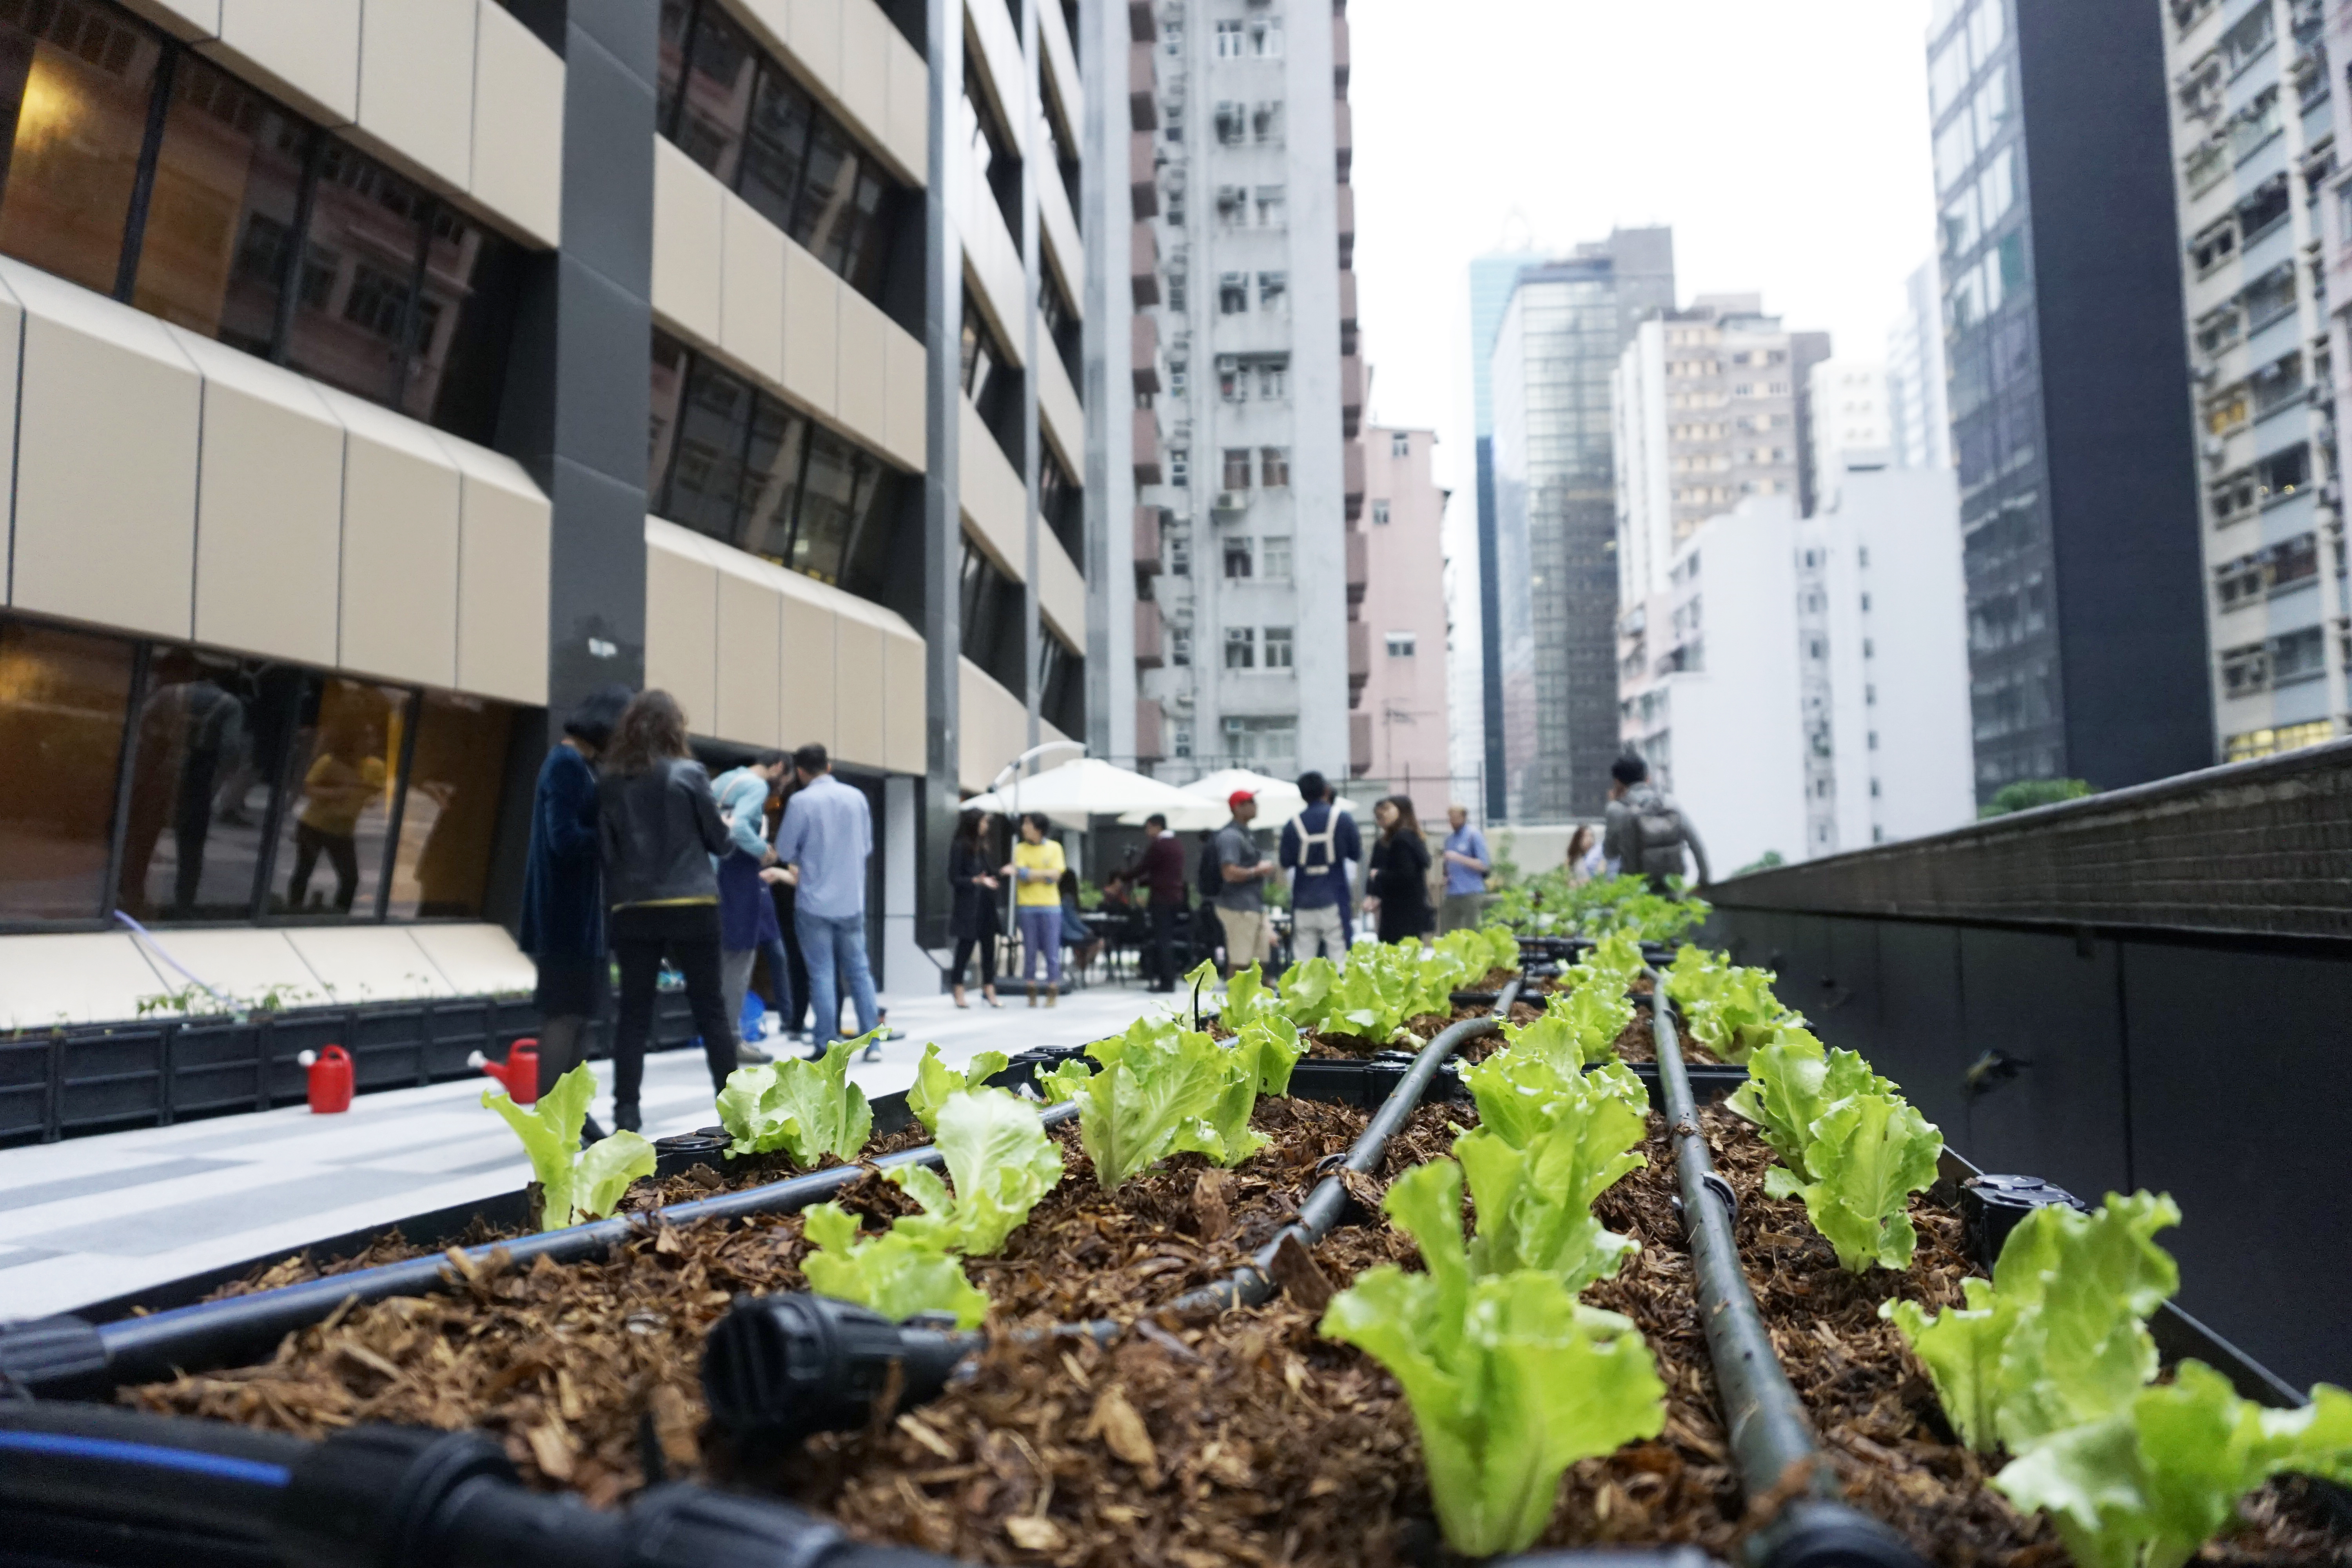 Participants can grow their own seasonal plants at the garden in Wan Chai